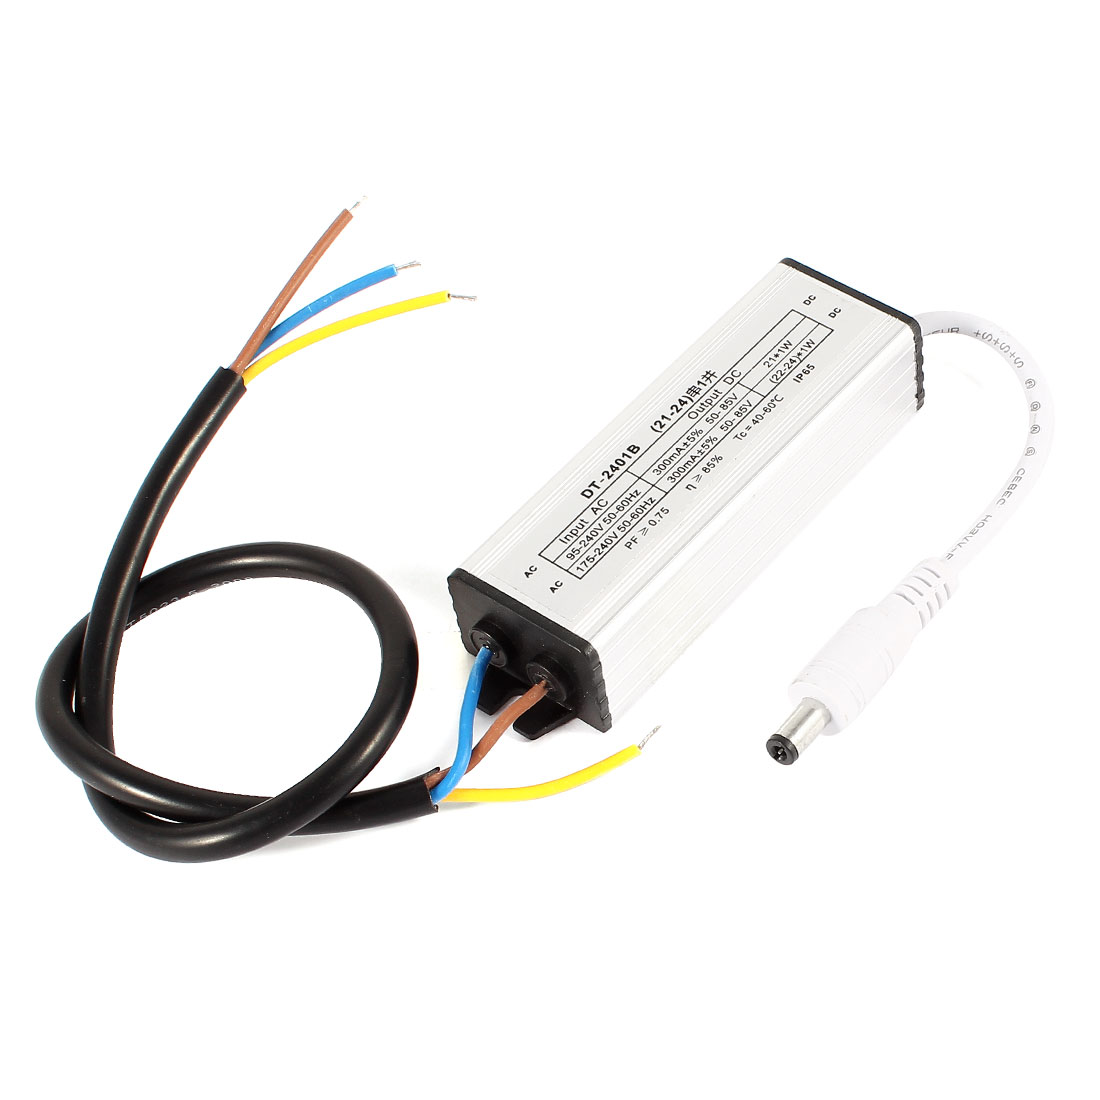 DC Plug Waterproof LED Constant Current Driver Transformer 21x1W (22-24)x1W